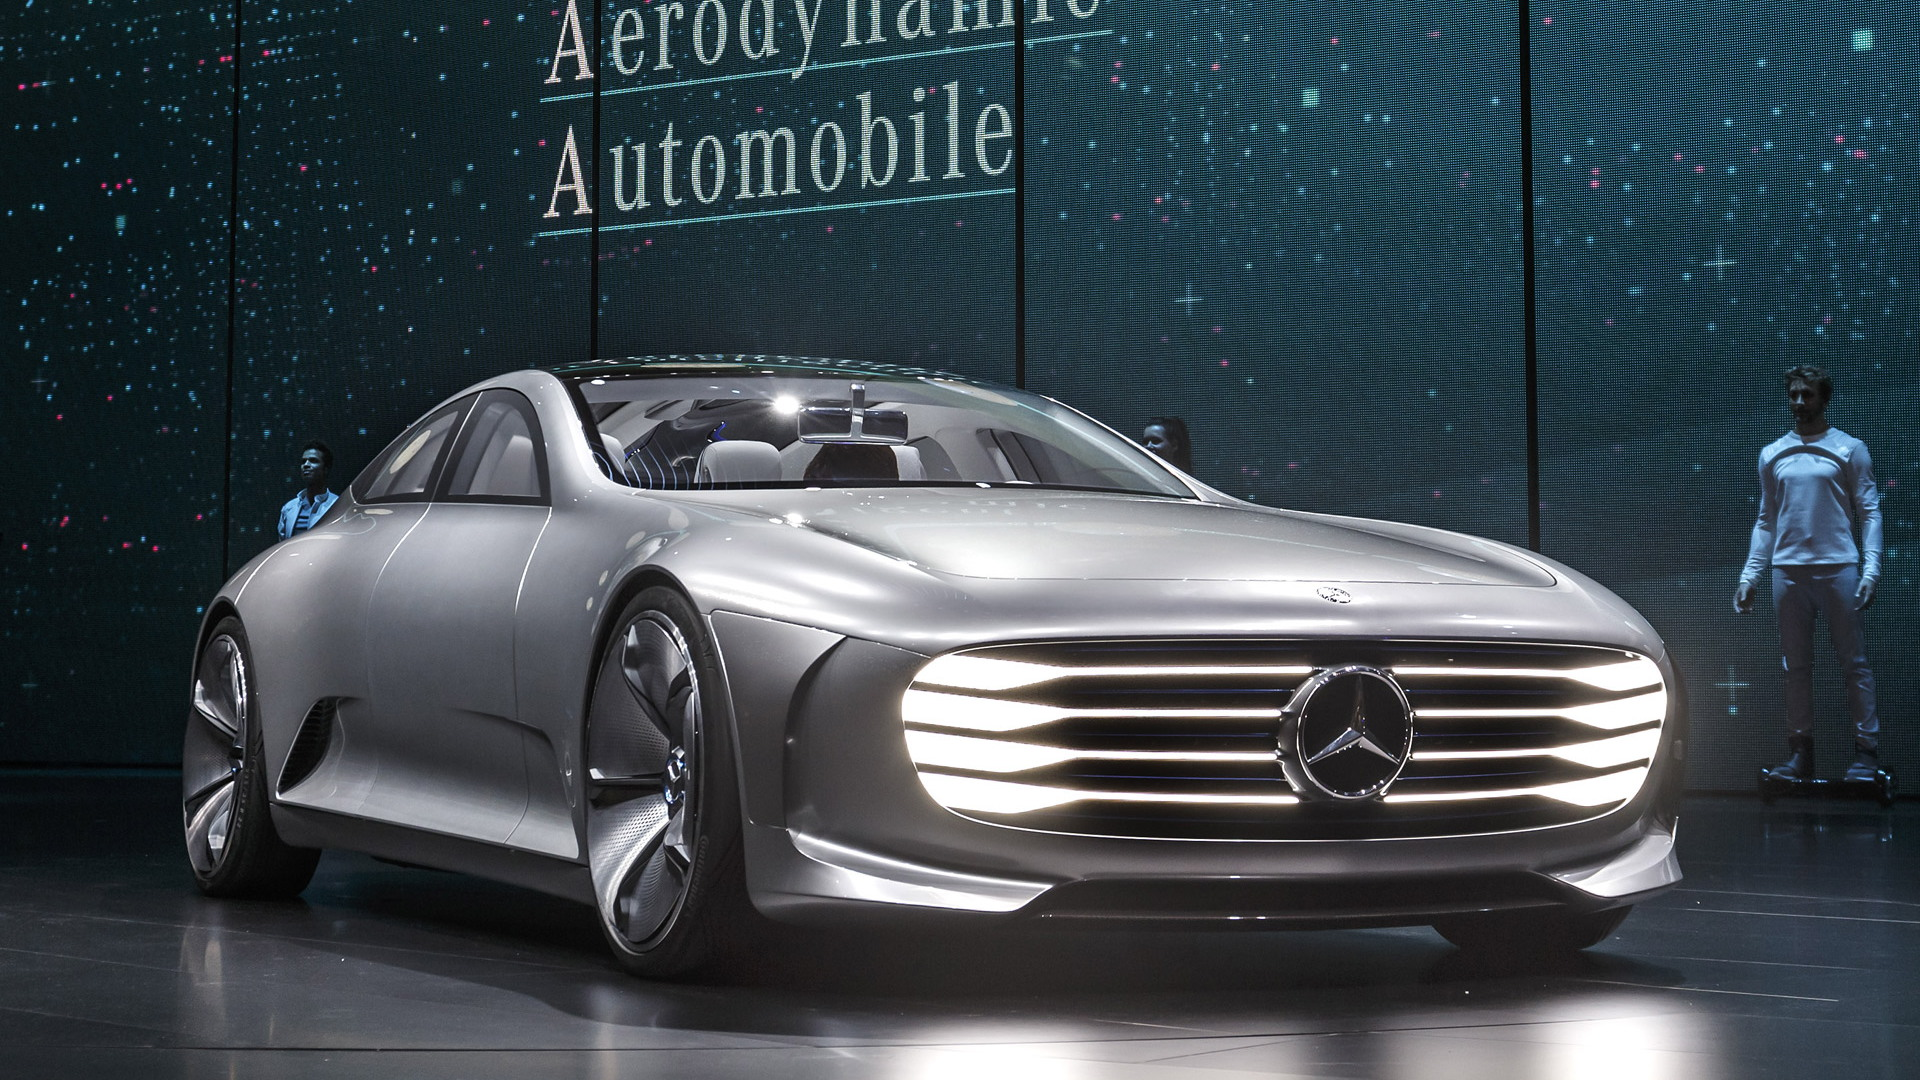 Mercedes-Benz Intelligent Aerodynamic Automobile concept, 2015 Frankfurt Auto Show